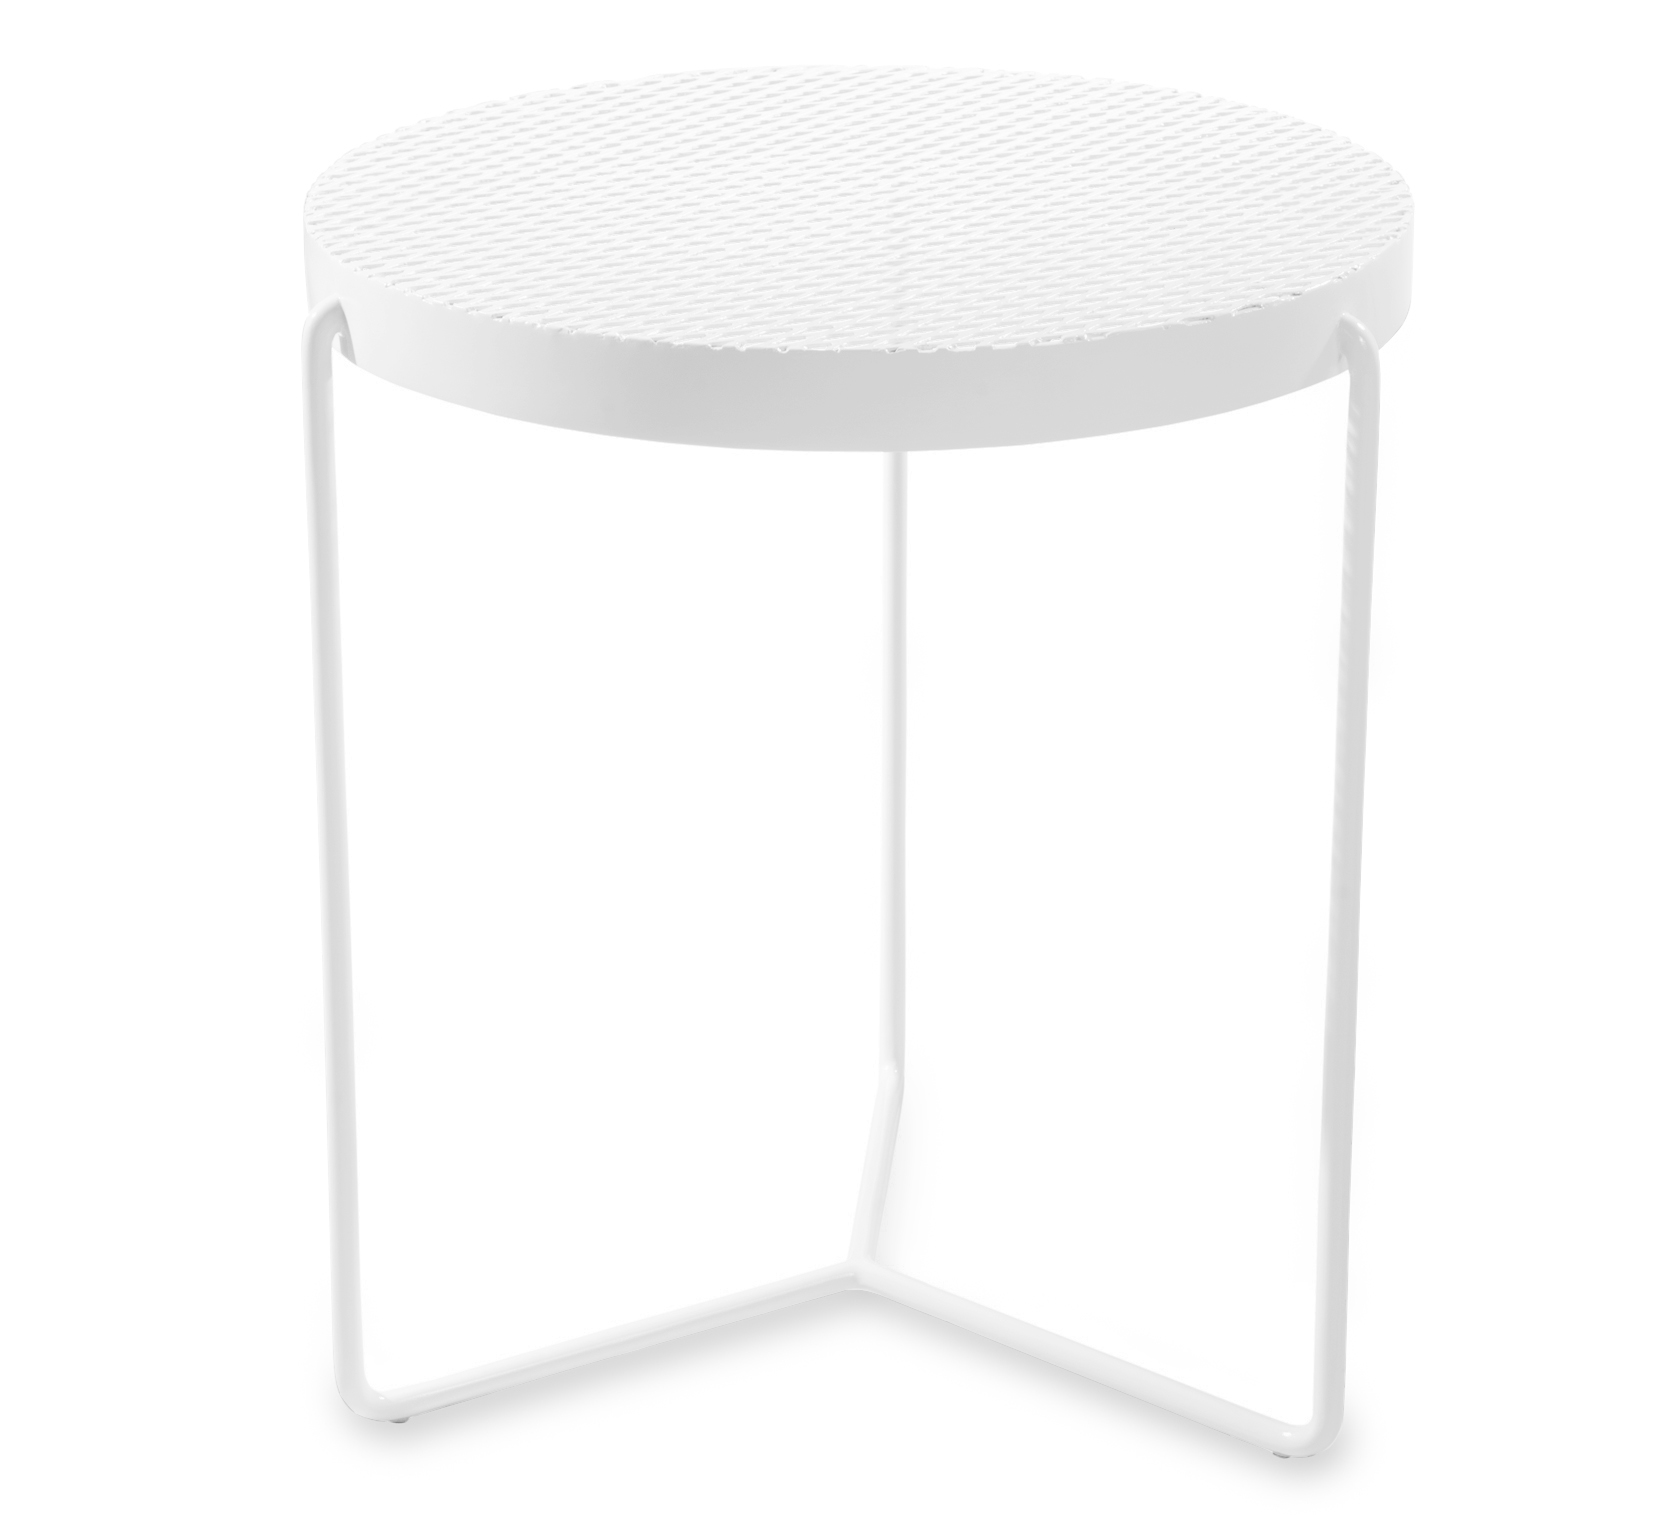 circa-table-medium-perforated-white